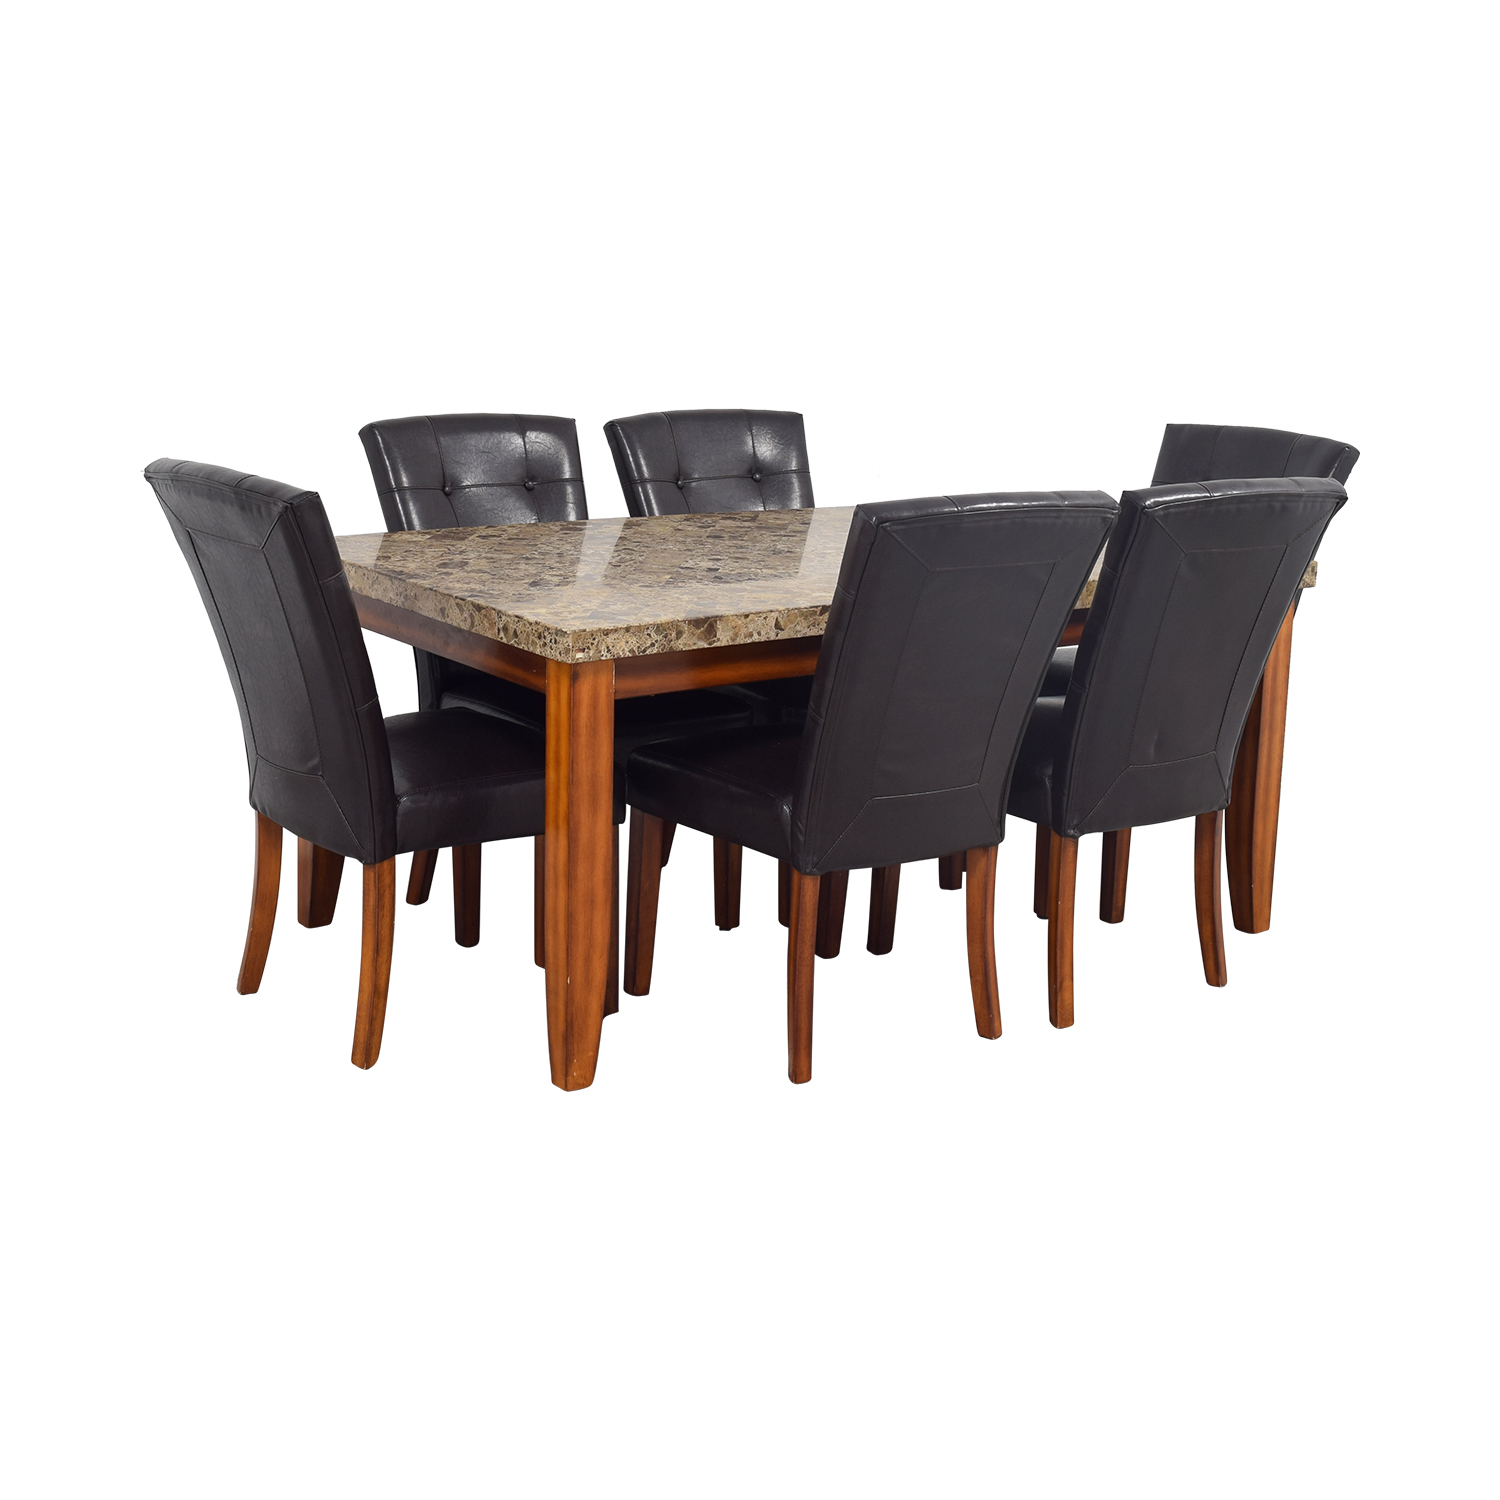 ... Bobs Furniture Bobs Furniture Faux Marble Dining Set Price ...